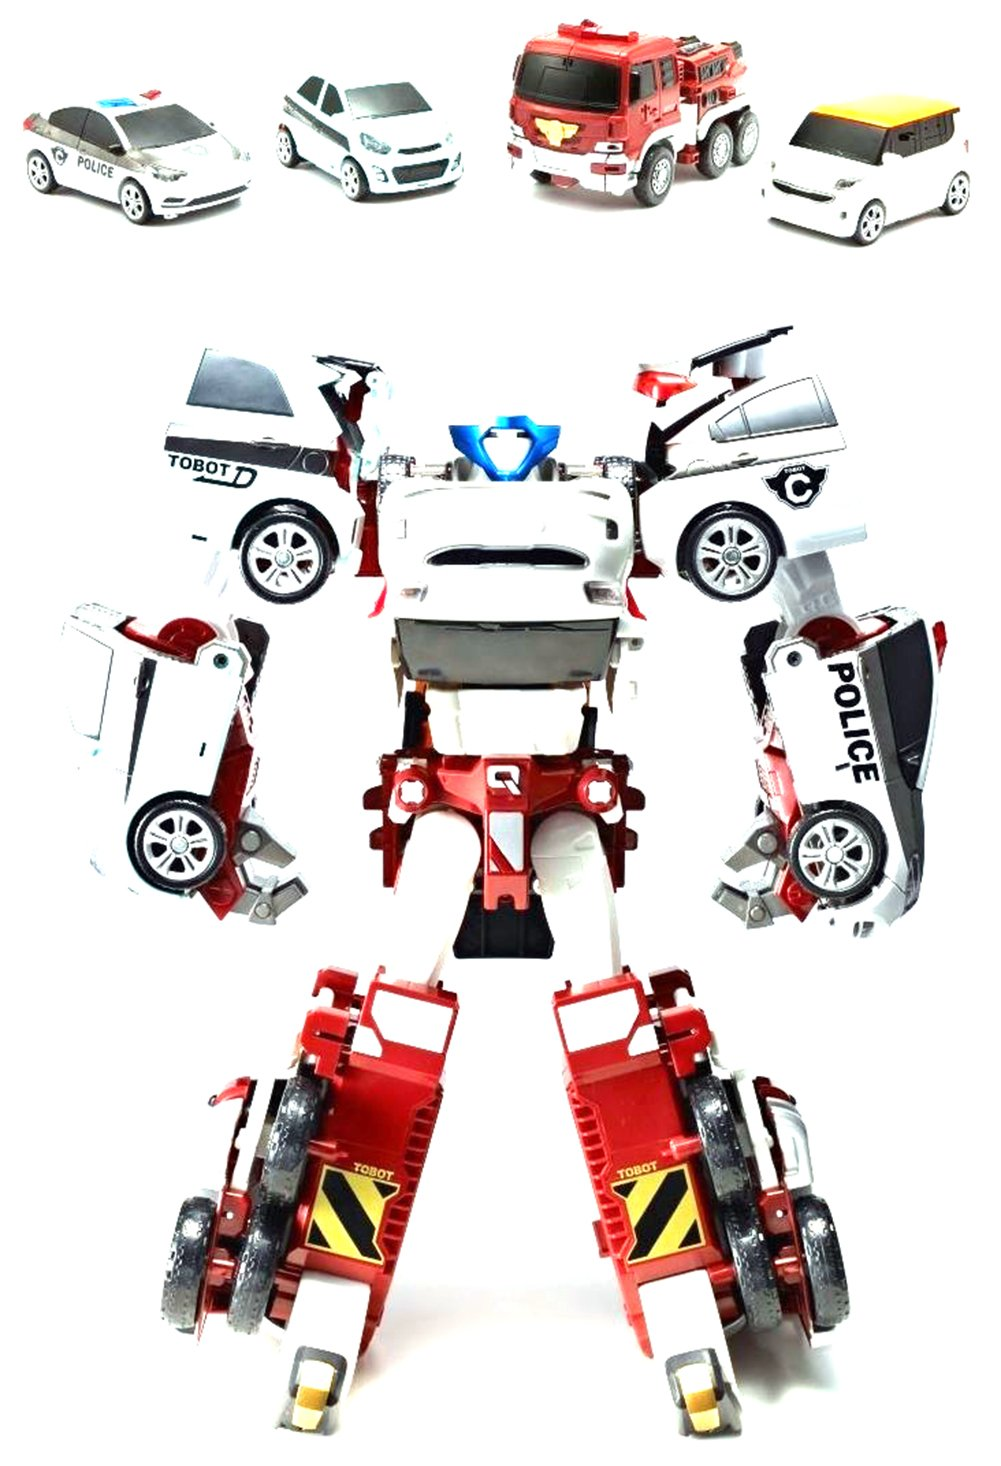 Tobot Quadrant Transformer Robot Toy KIA Motors Diecast Cars Vehicles by Youngs Toy by Youngs Toy